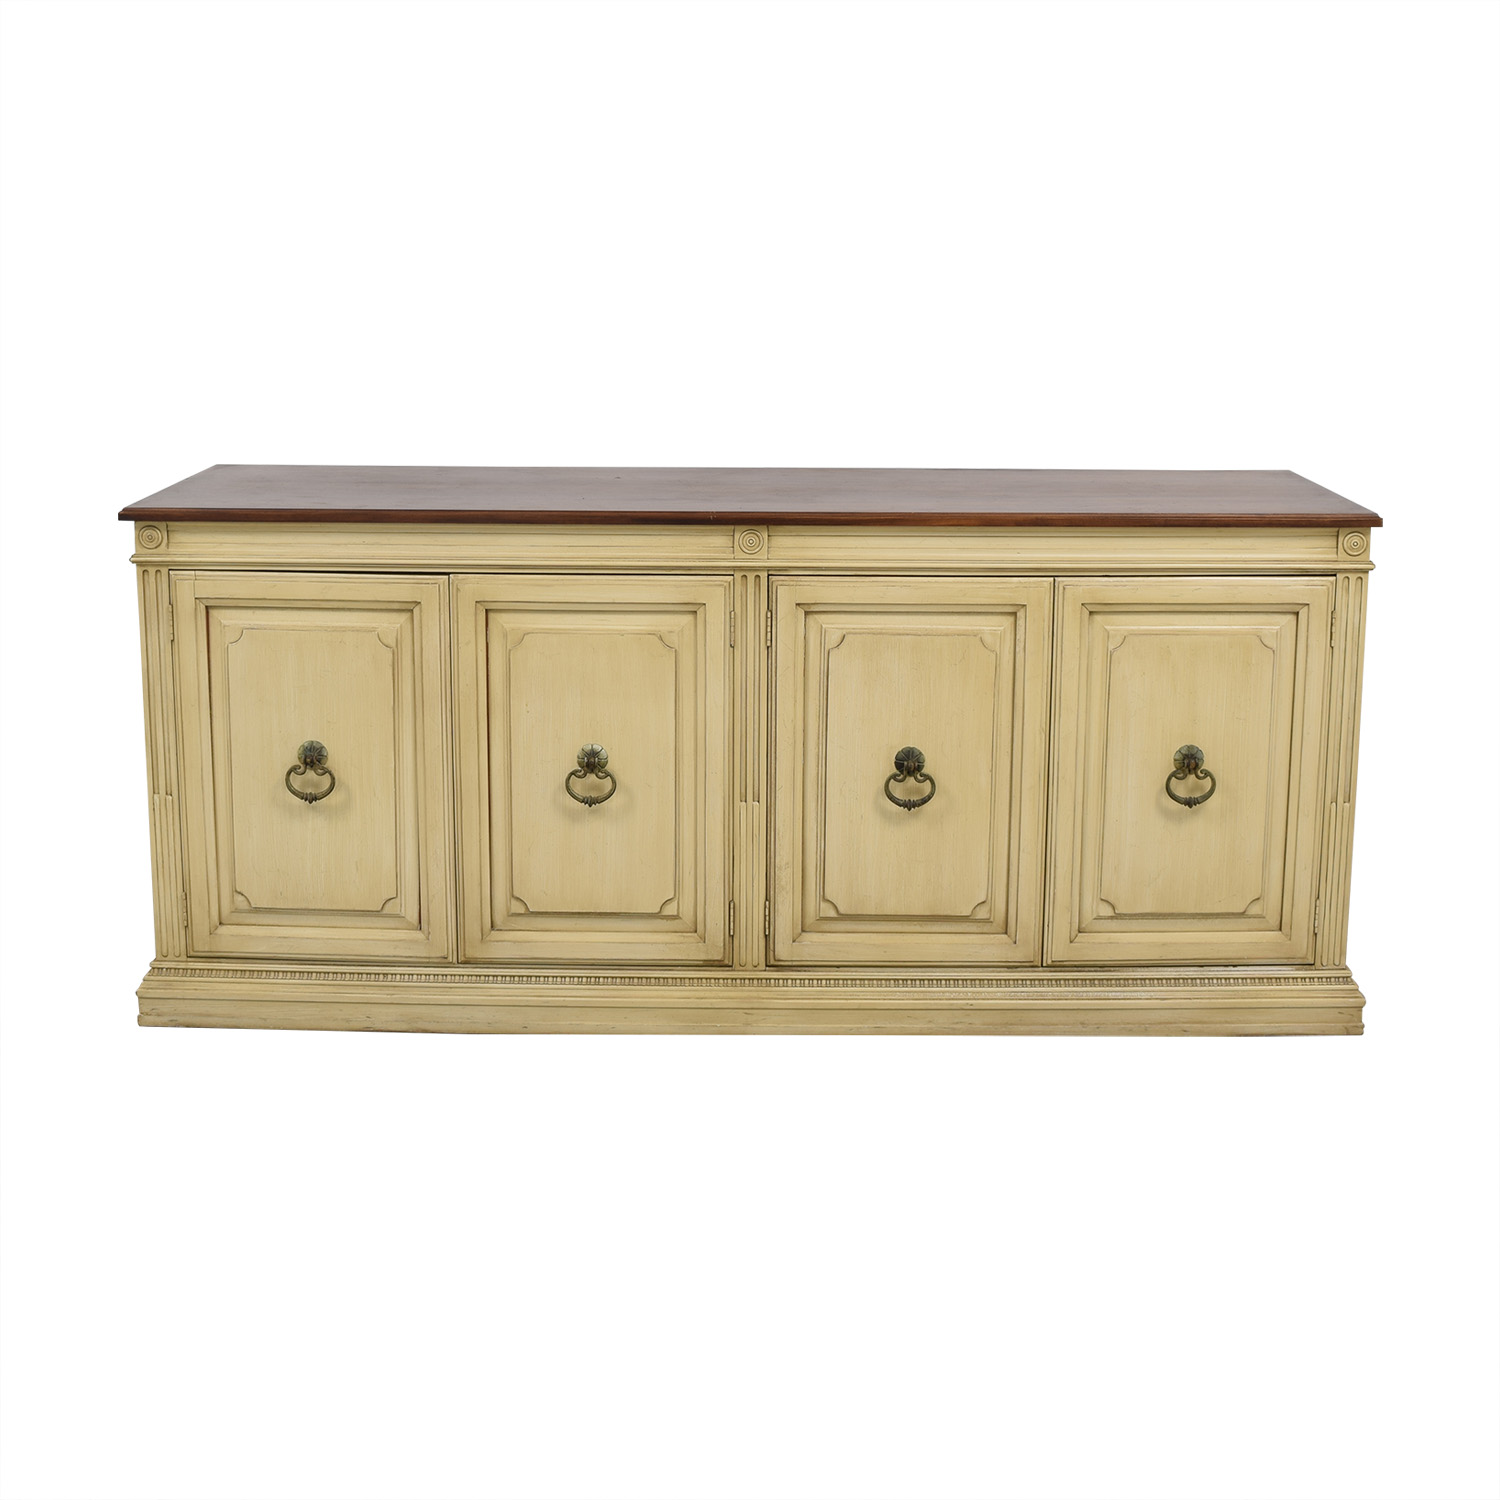 Davis Cabinet Company Davis Cabinet Company Sideboard Cabinets & Sideboards